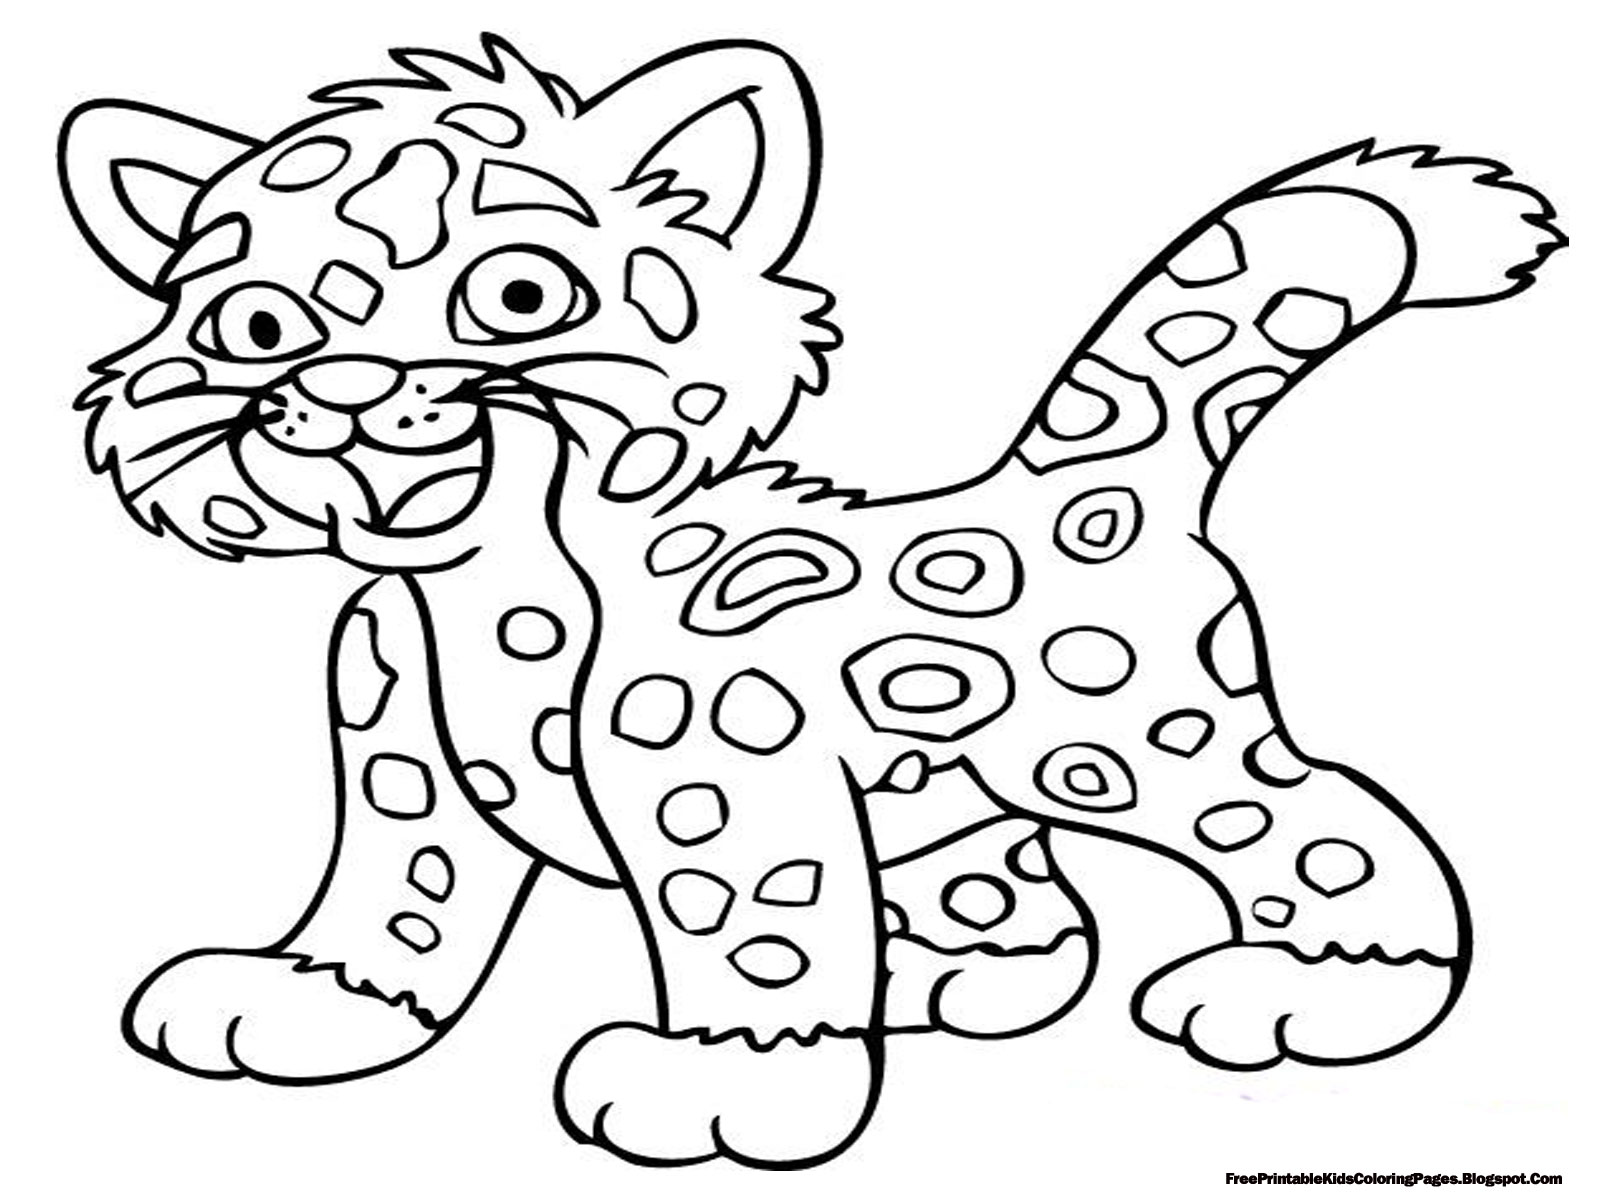 coloring pages jaguars - photo#16